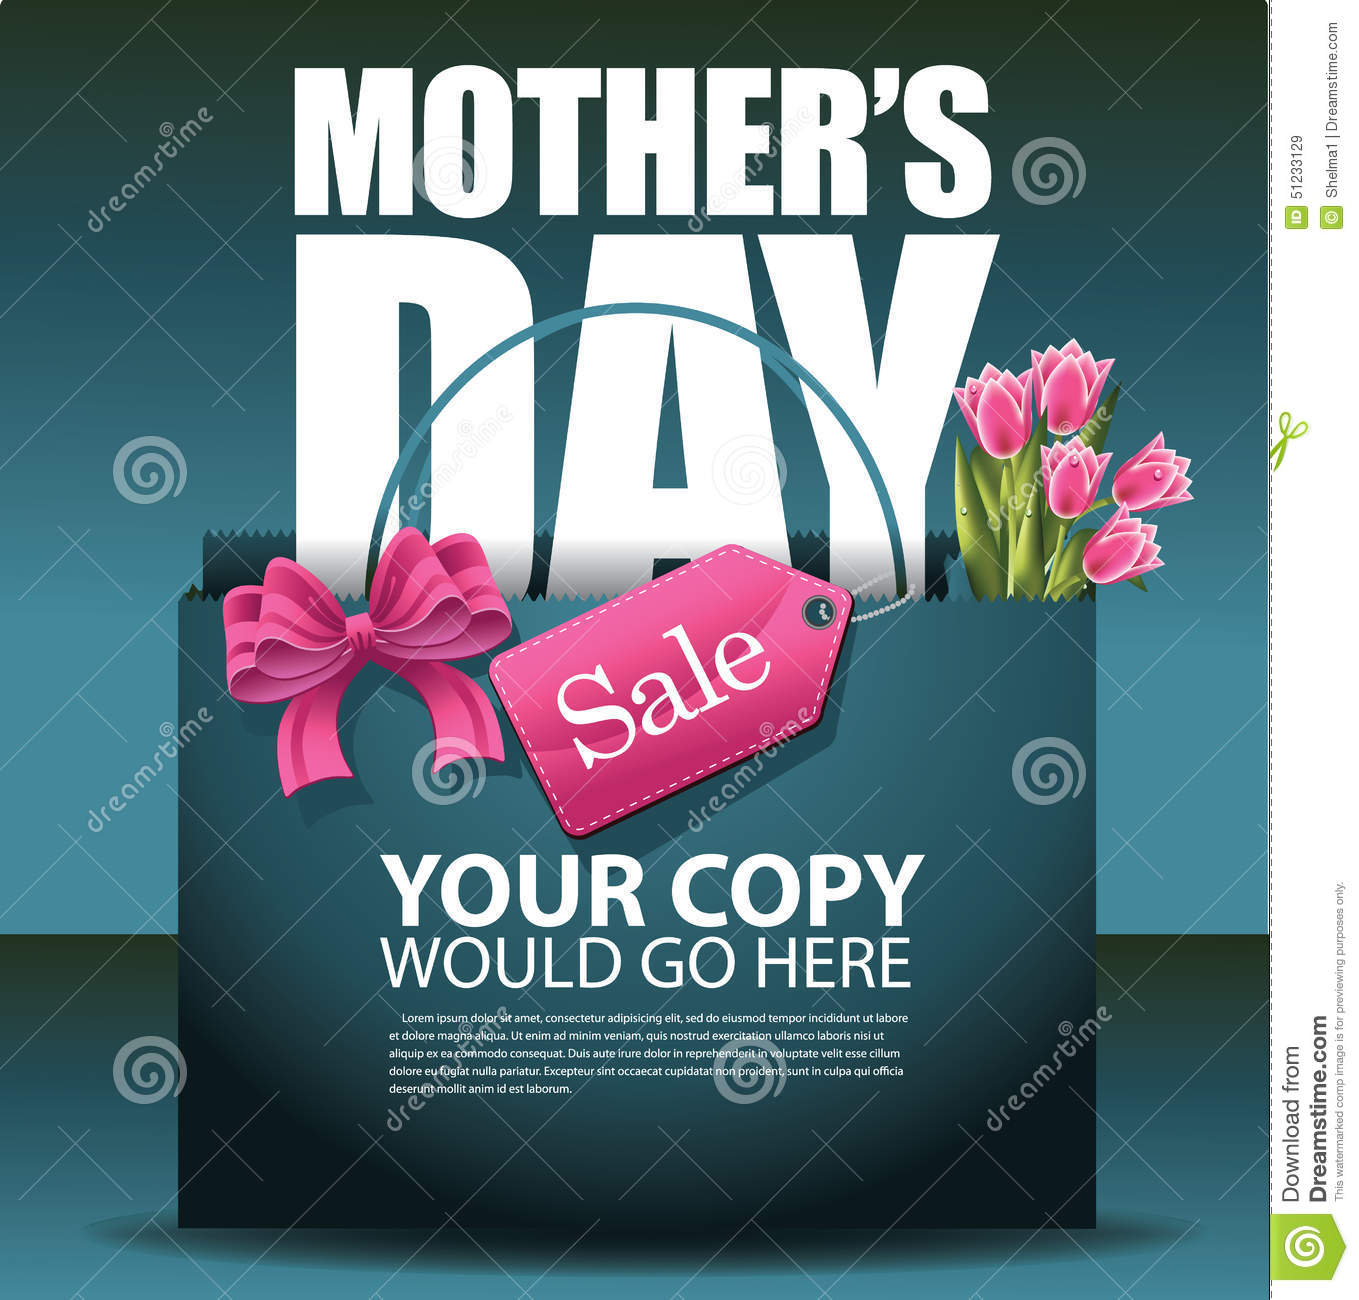 Mothers Day Storewide Sale Template: Mothers Day Sale Shopping Bag Design EPS 10 Vector